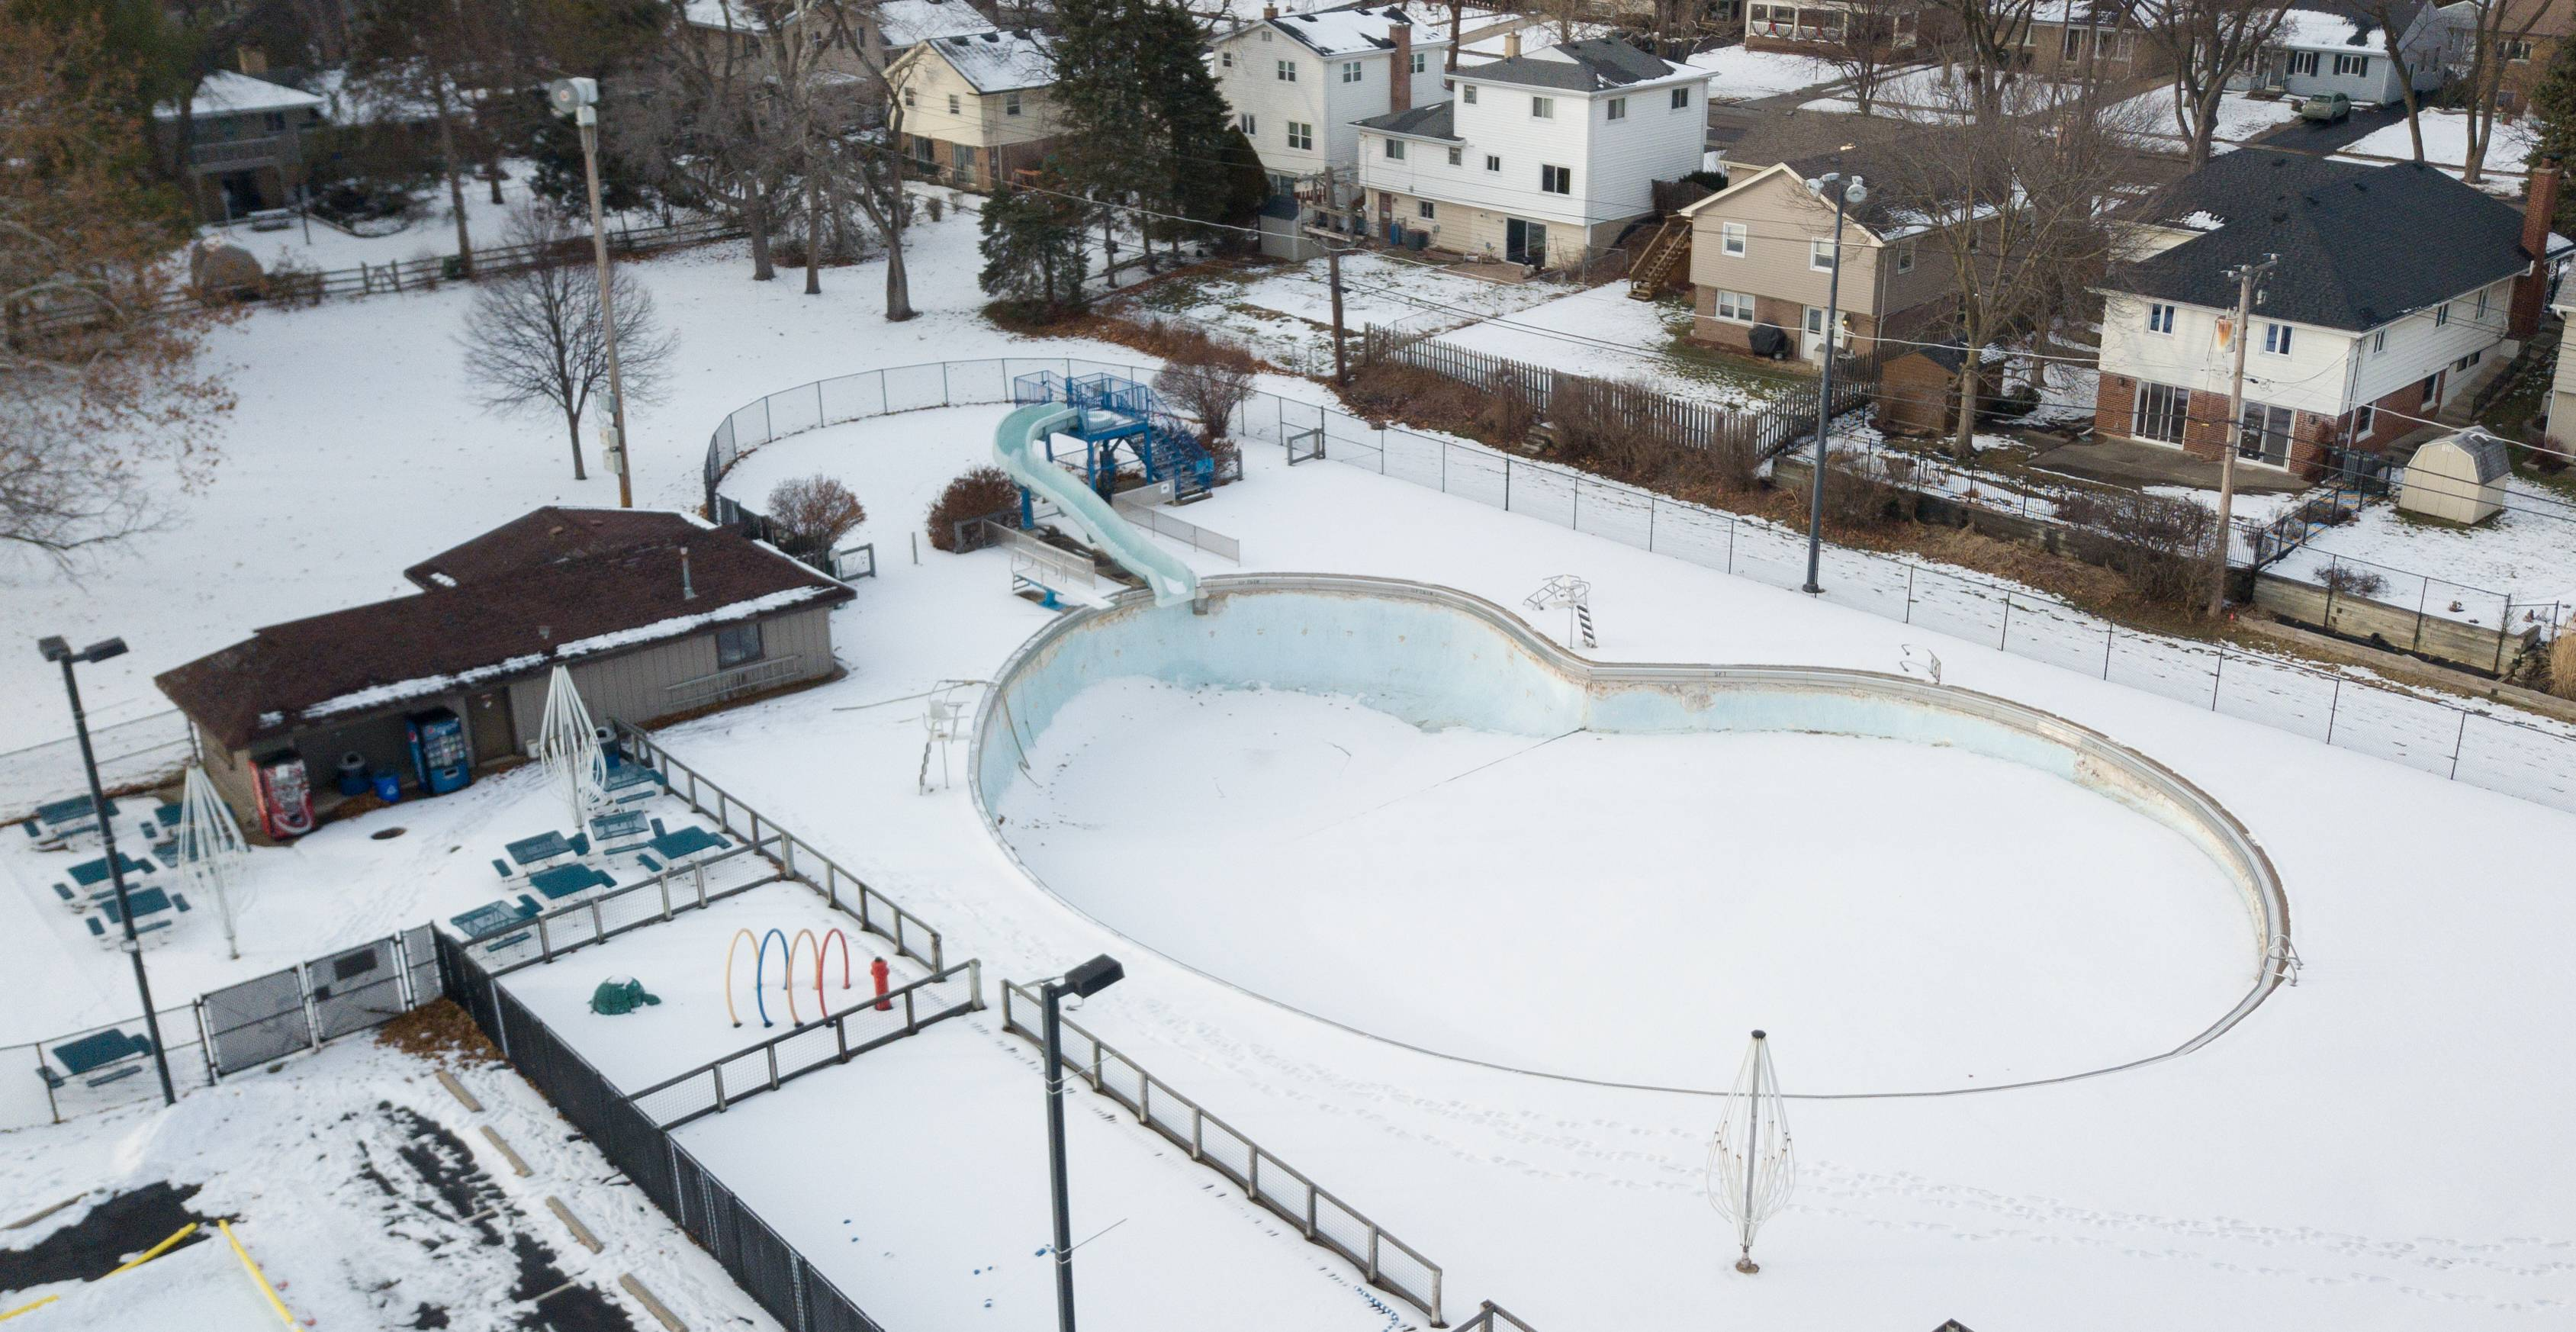 Villa Park challenges residents to find funds to fix pool